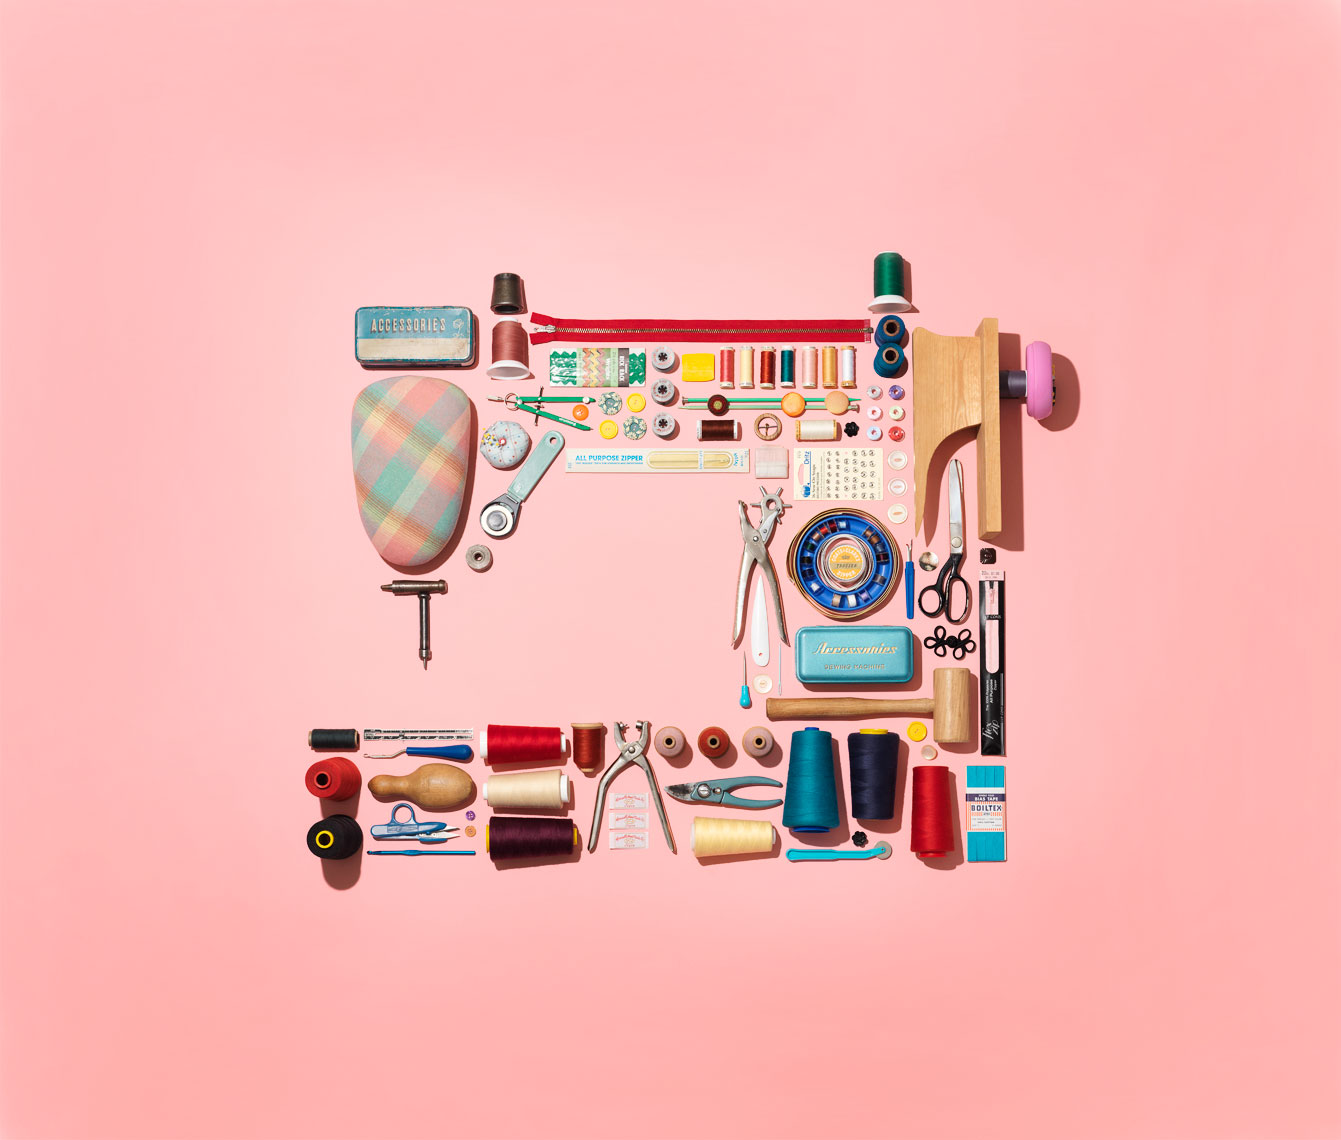 collection  of sewing stuff in shape of a sewing machine